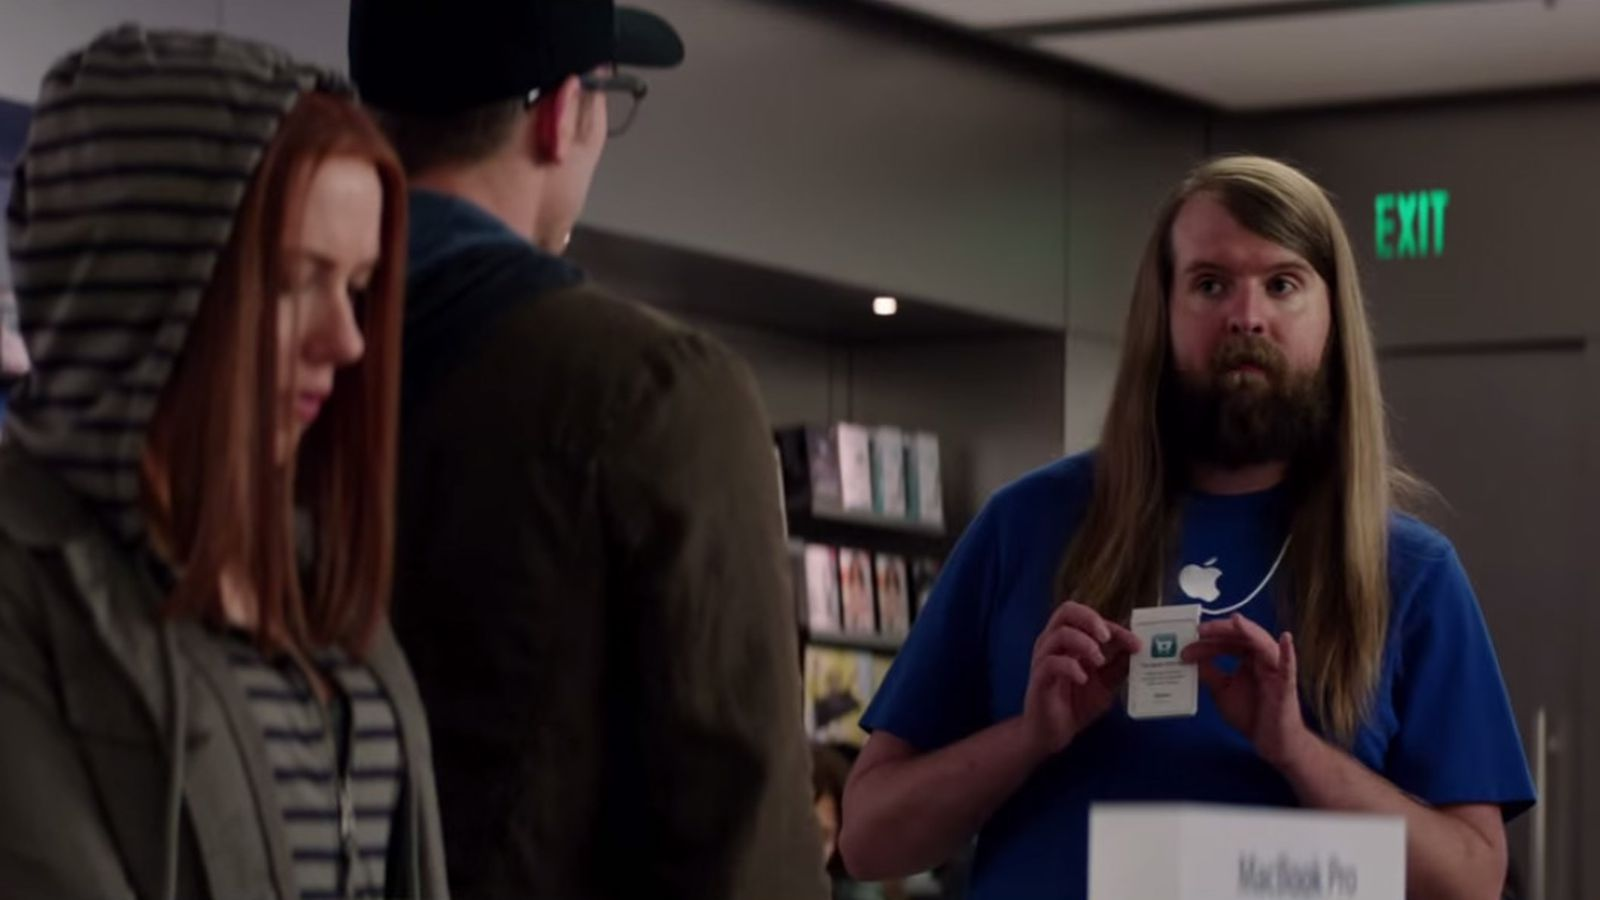 Apple Had The Most Product Placement In The Films Of 2014